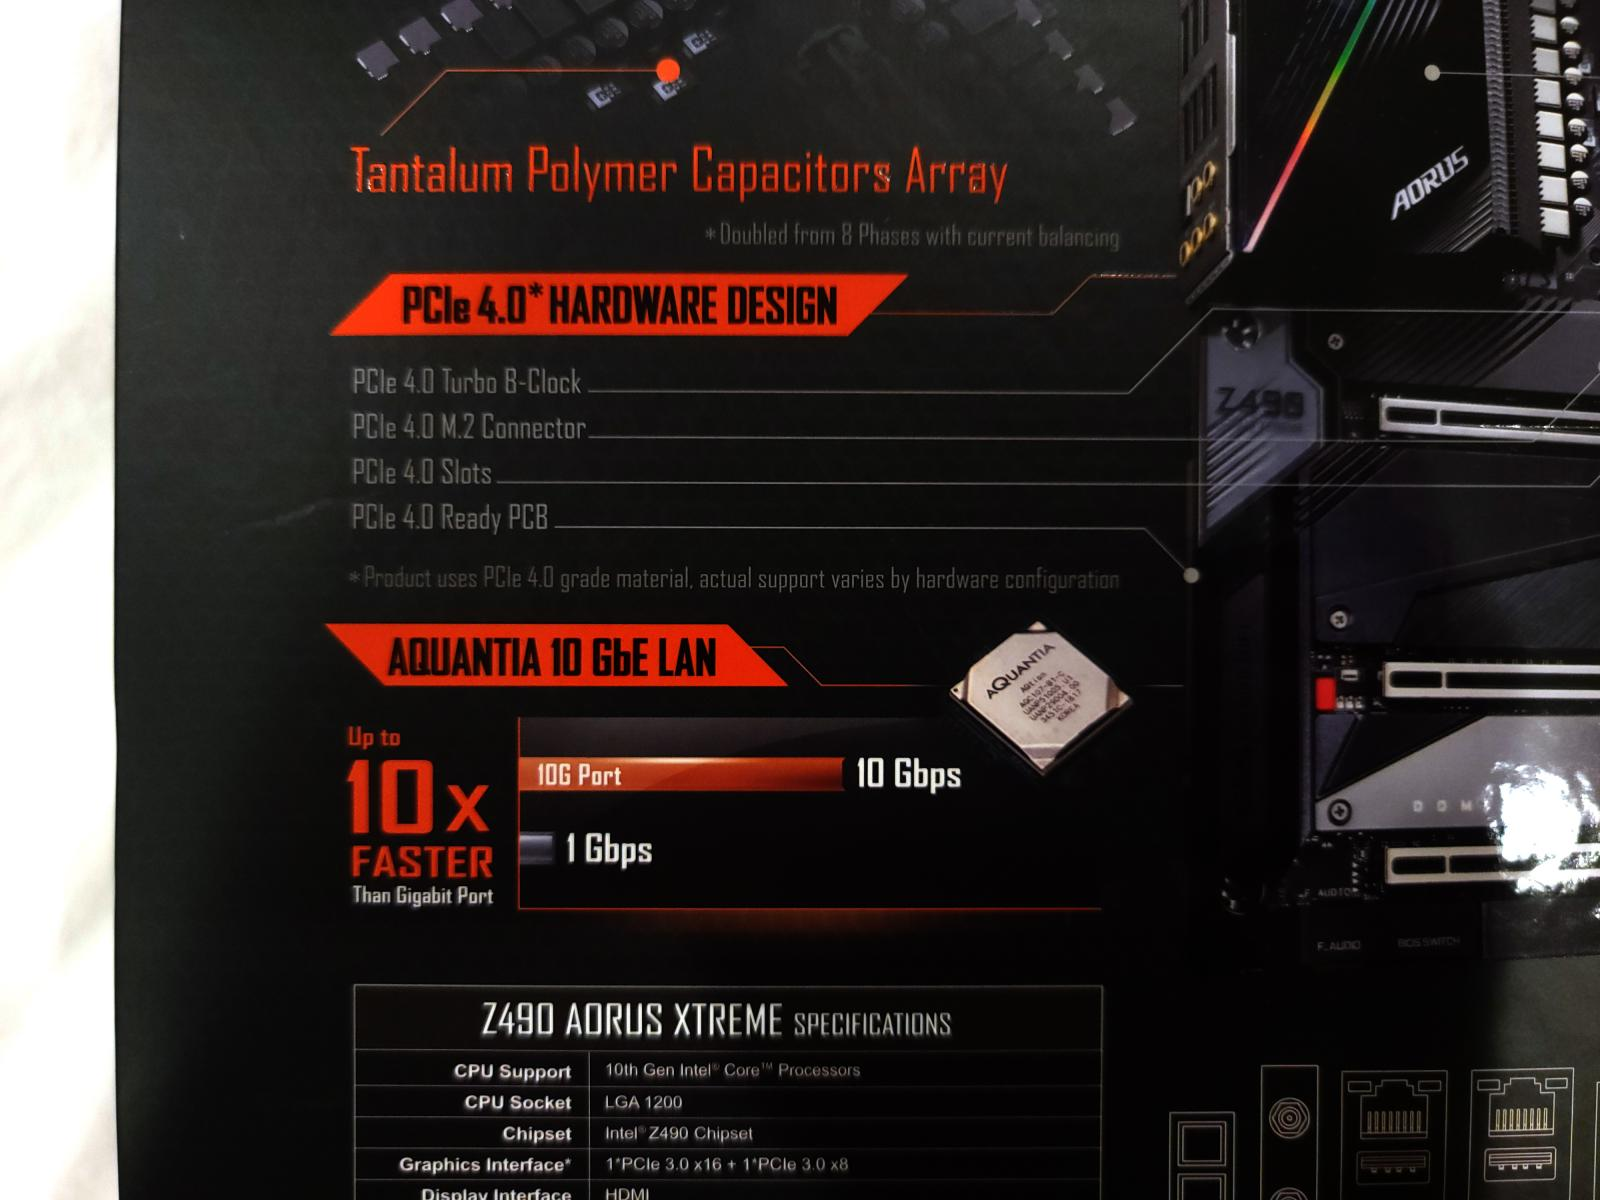 Photo of Gigabyte AORUS Z490 Xtreme, with onboard 10GbE and Thunderbolt 3